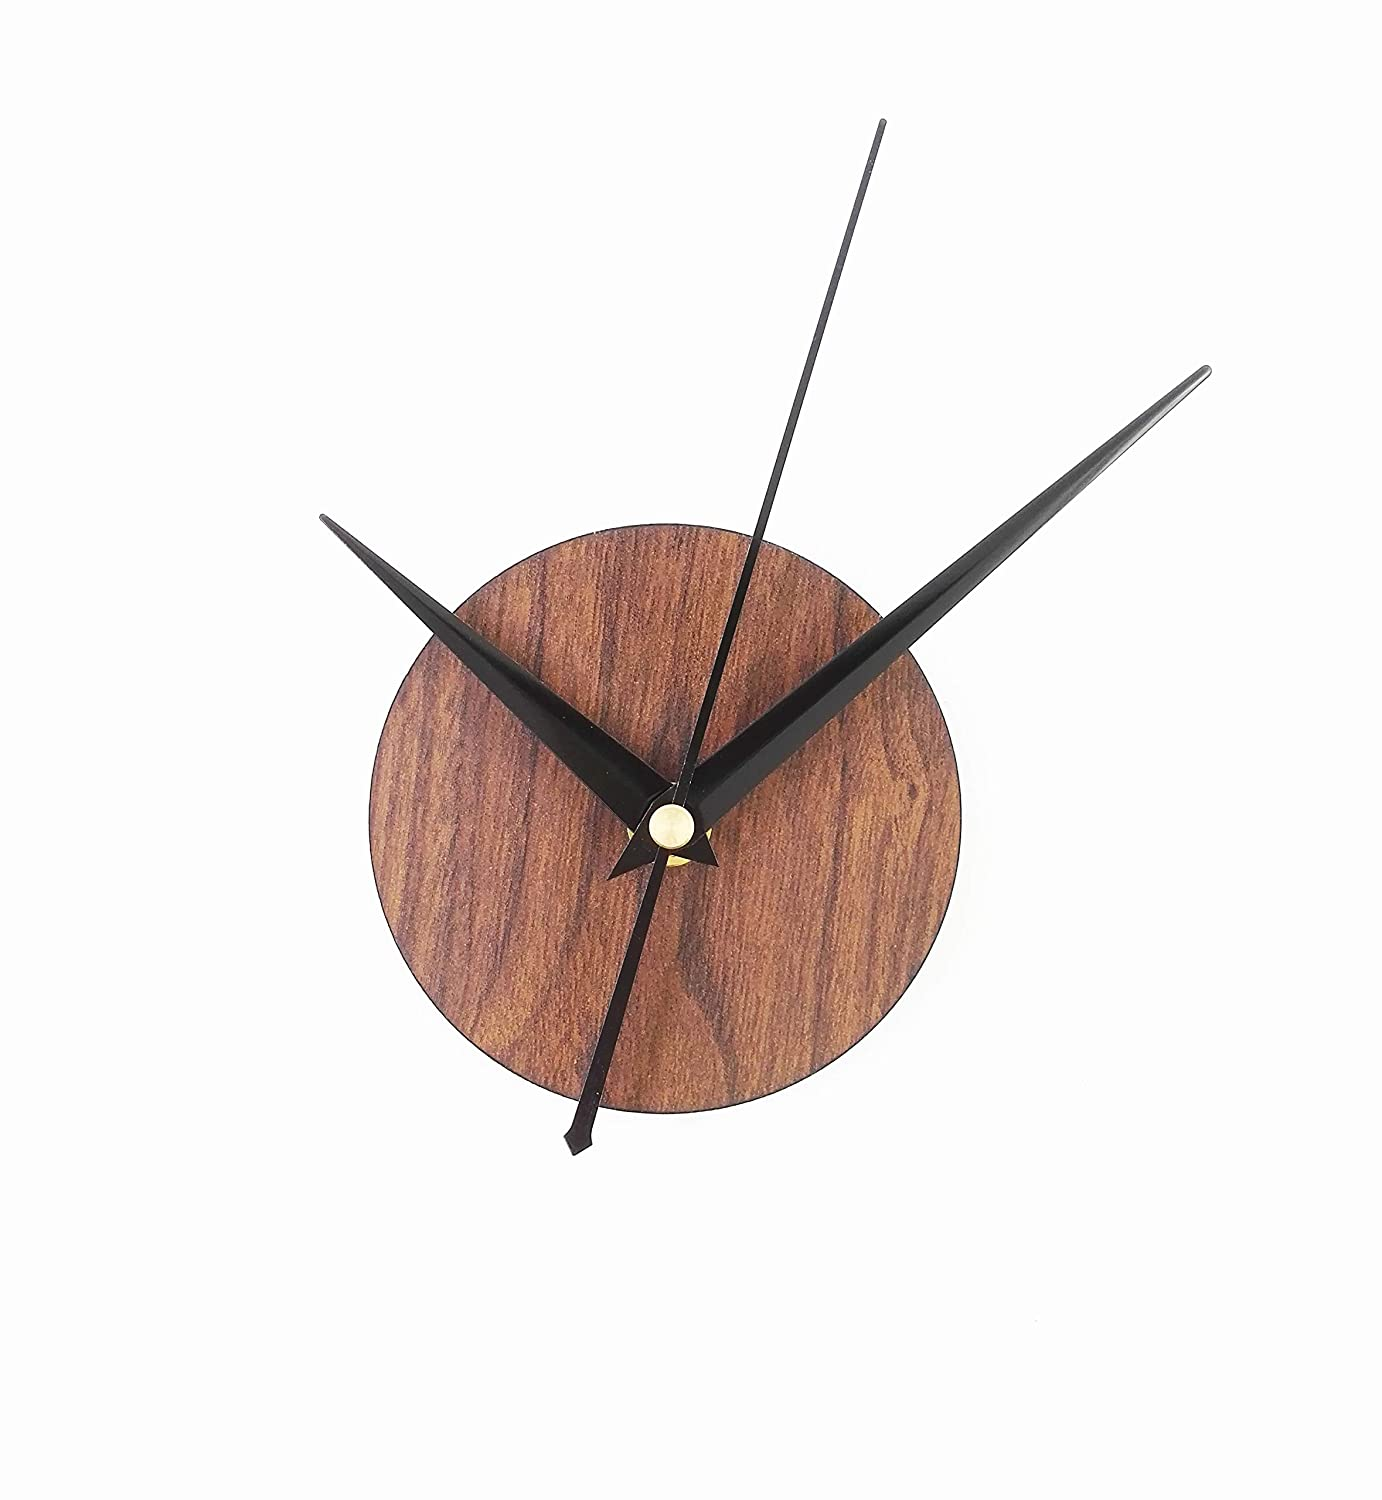 Reliable-E Wood Like Clock Face Power Movement DIY Wall Clock Kit for Home Decor (Brown) Reliable_E